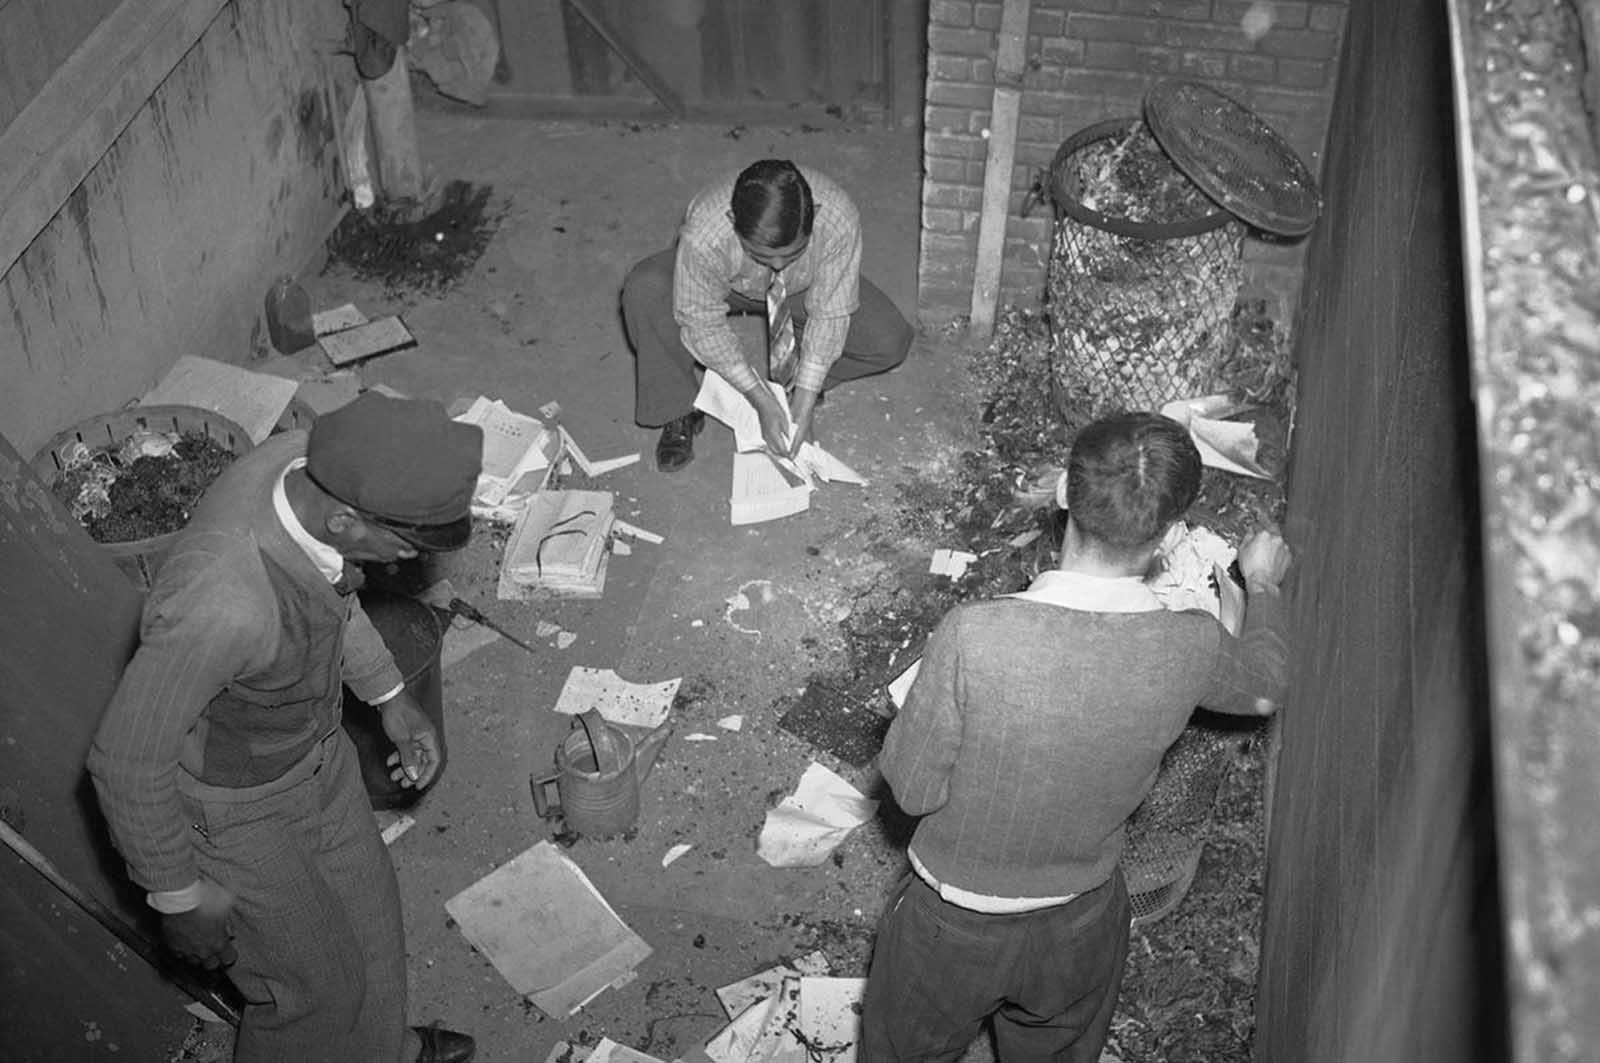 Unidentified attaches of the Japanese consulate began burning papers, ledgers and other records shortly after Japan went to war against the U.S., on December 7, 1941, in New Orleans, Louisiana. Police later stopped the fire after most of the papers had been destroyed.